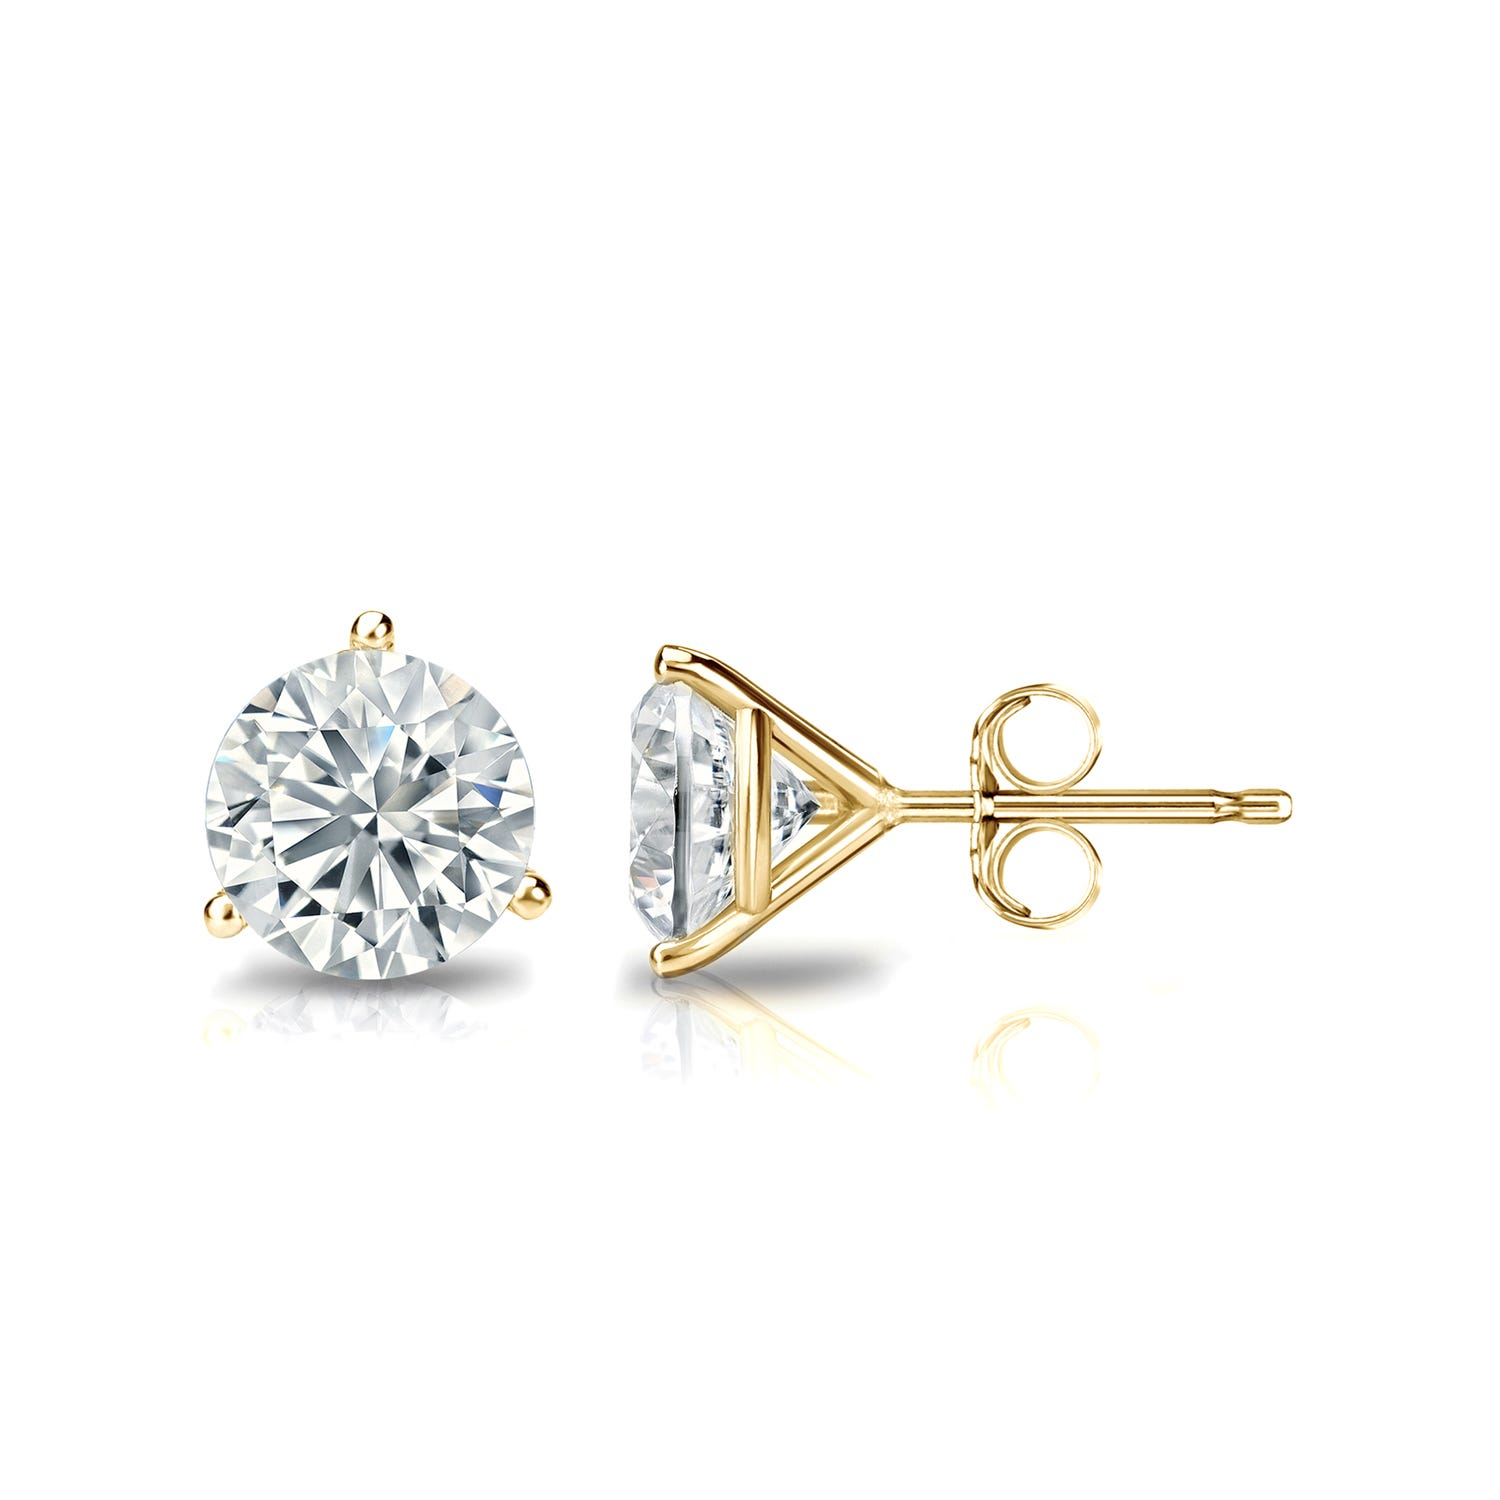 1 CTTW Round Diamond Solitaire Stud Earrings IJ SI2 in 14K Yellow Gold IGI Certified 3-Prong Setting